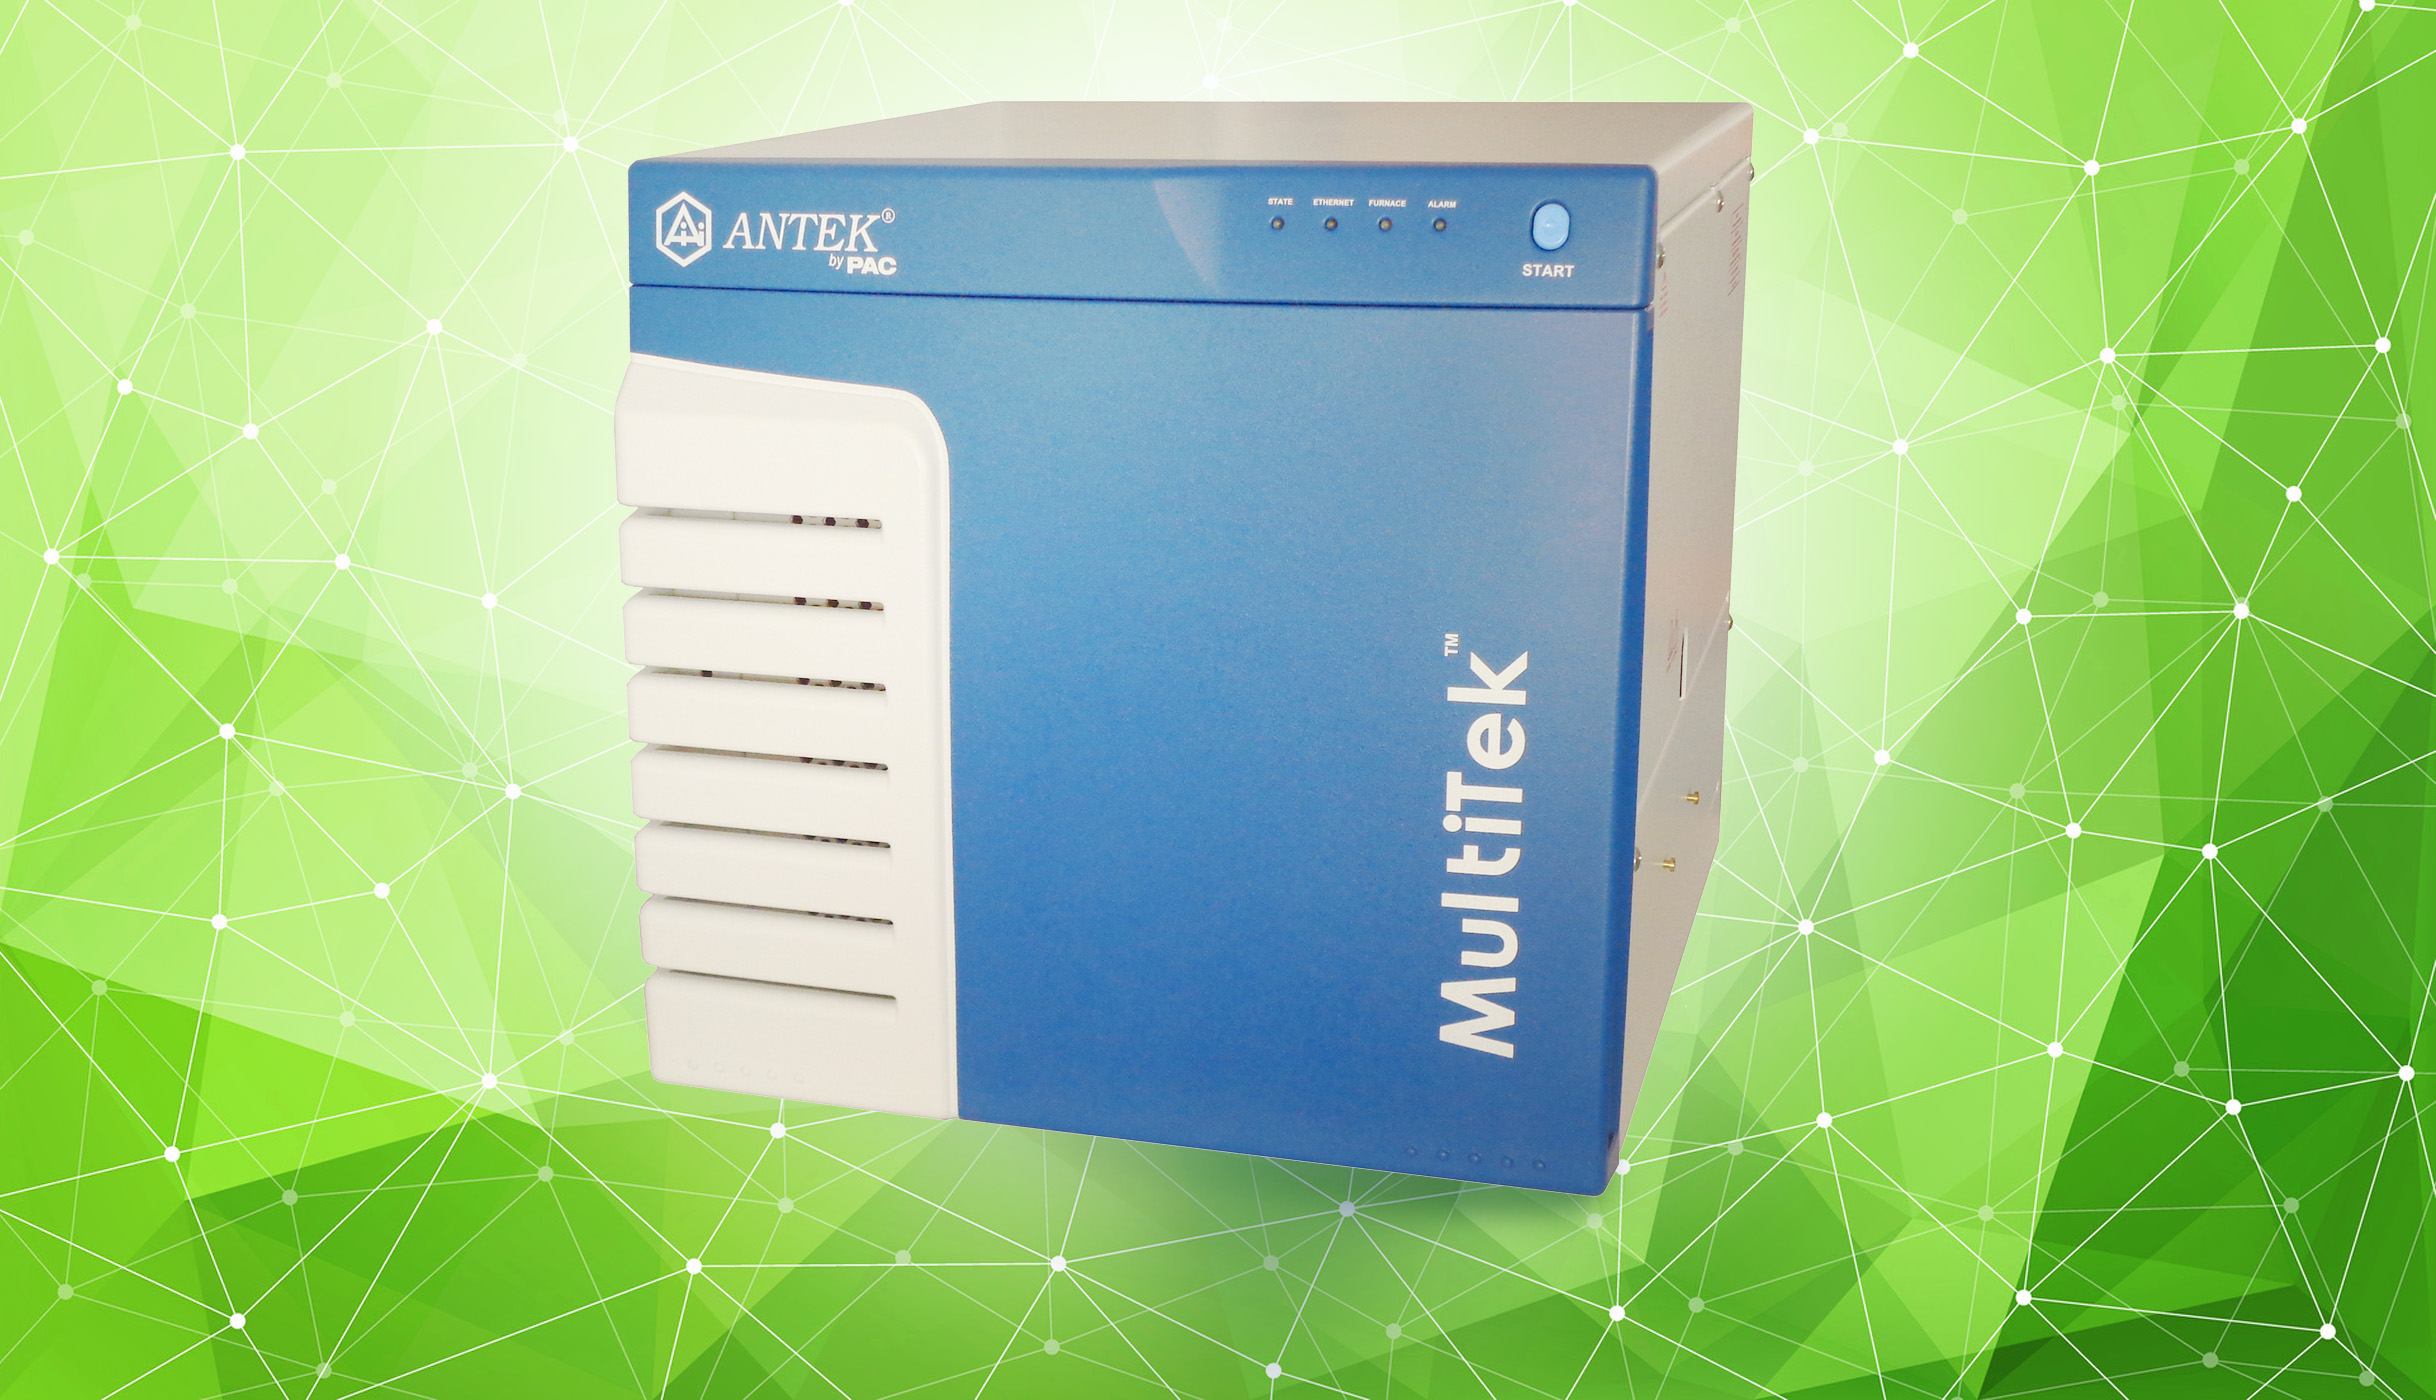 AlyTech, distributor of PAC-Antek products